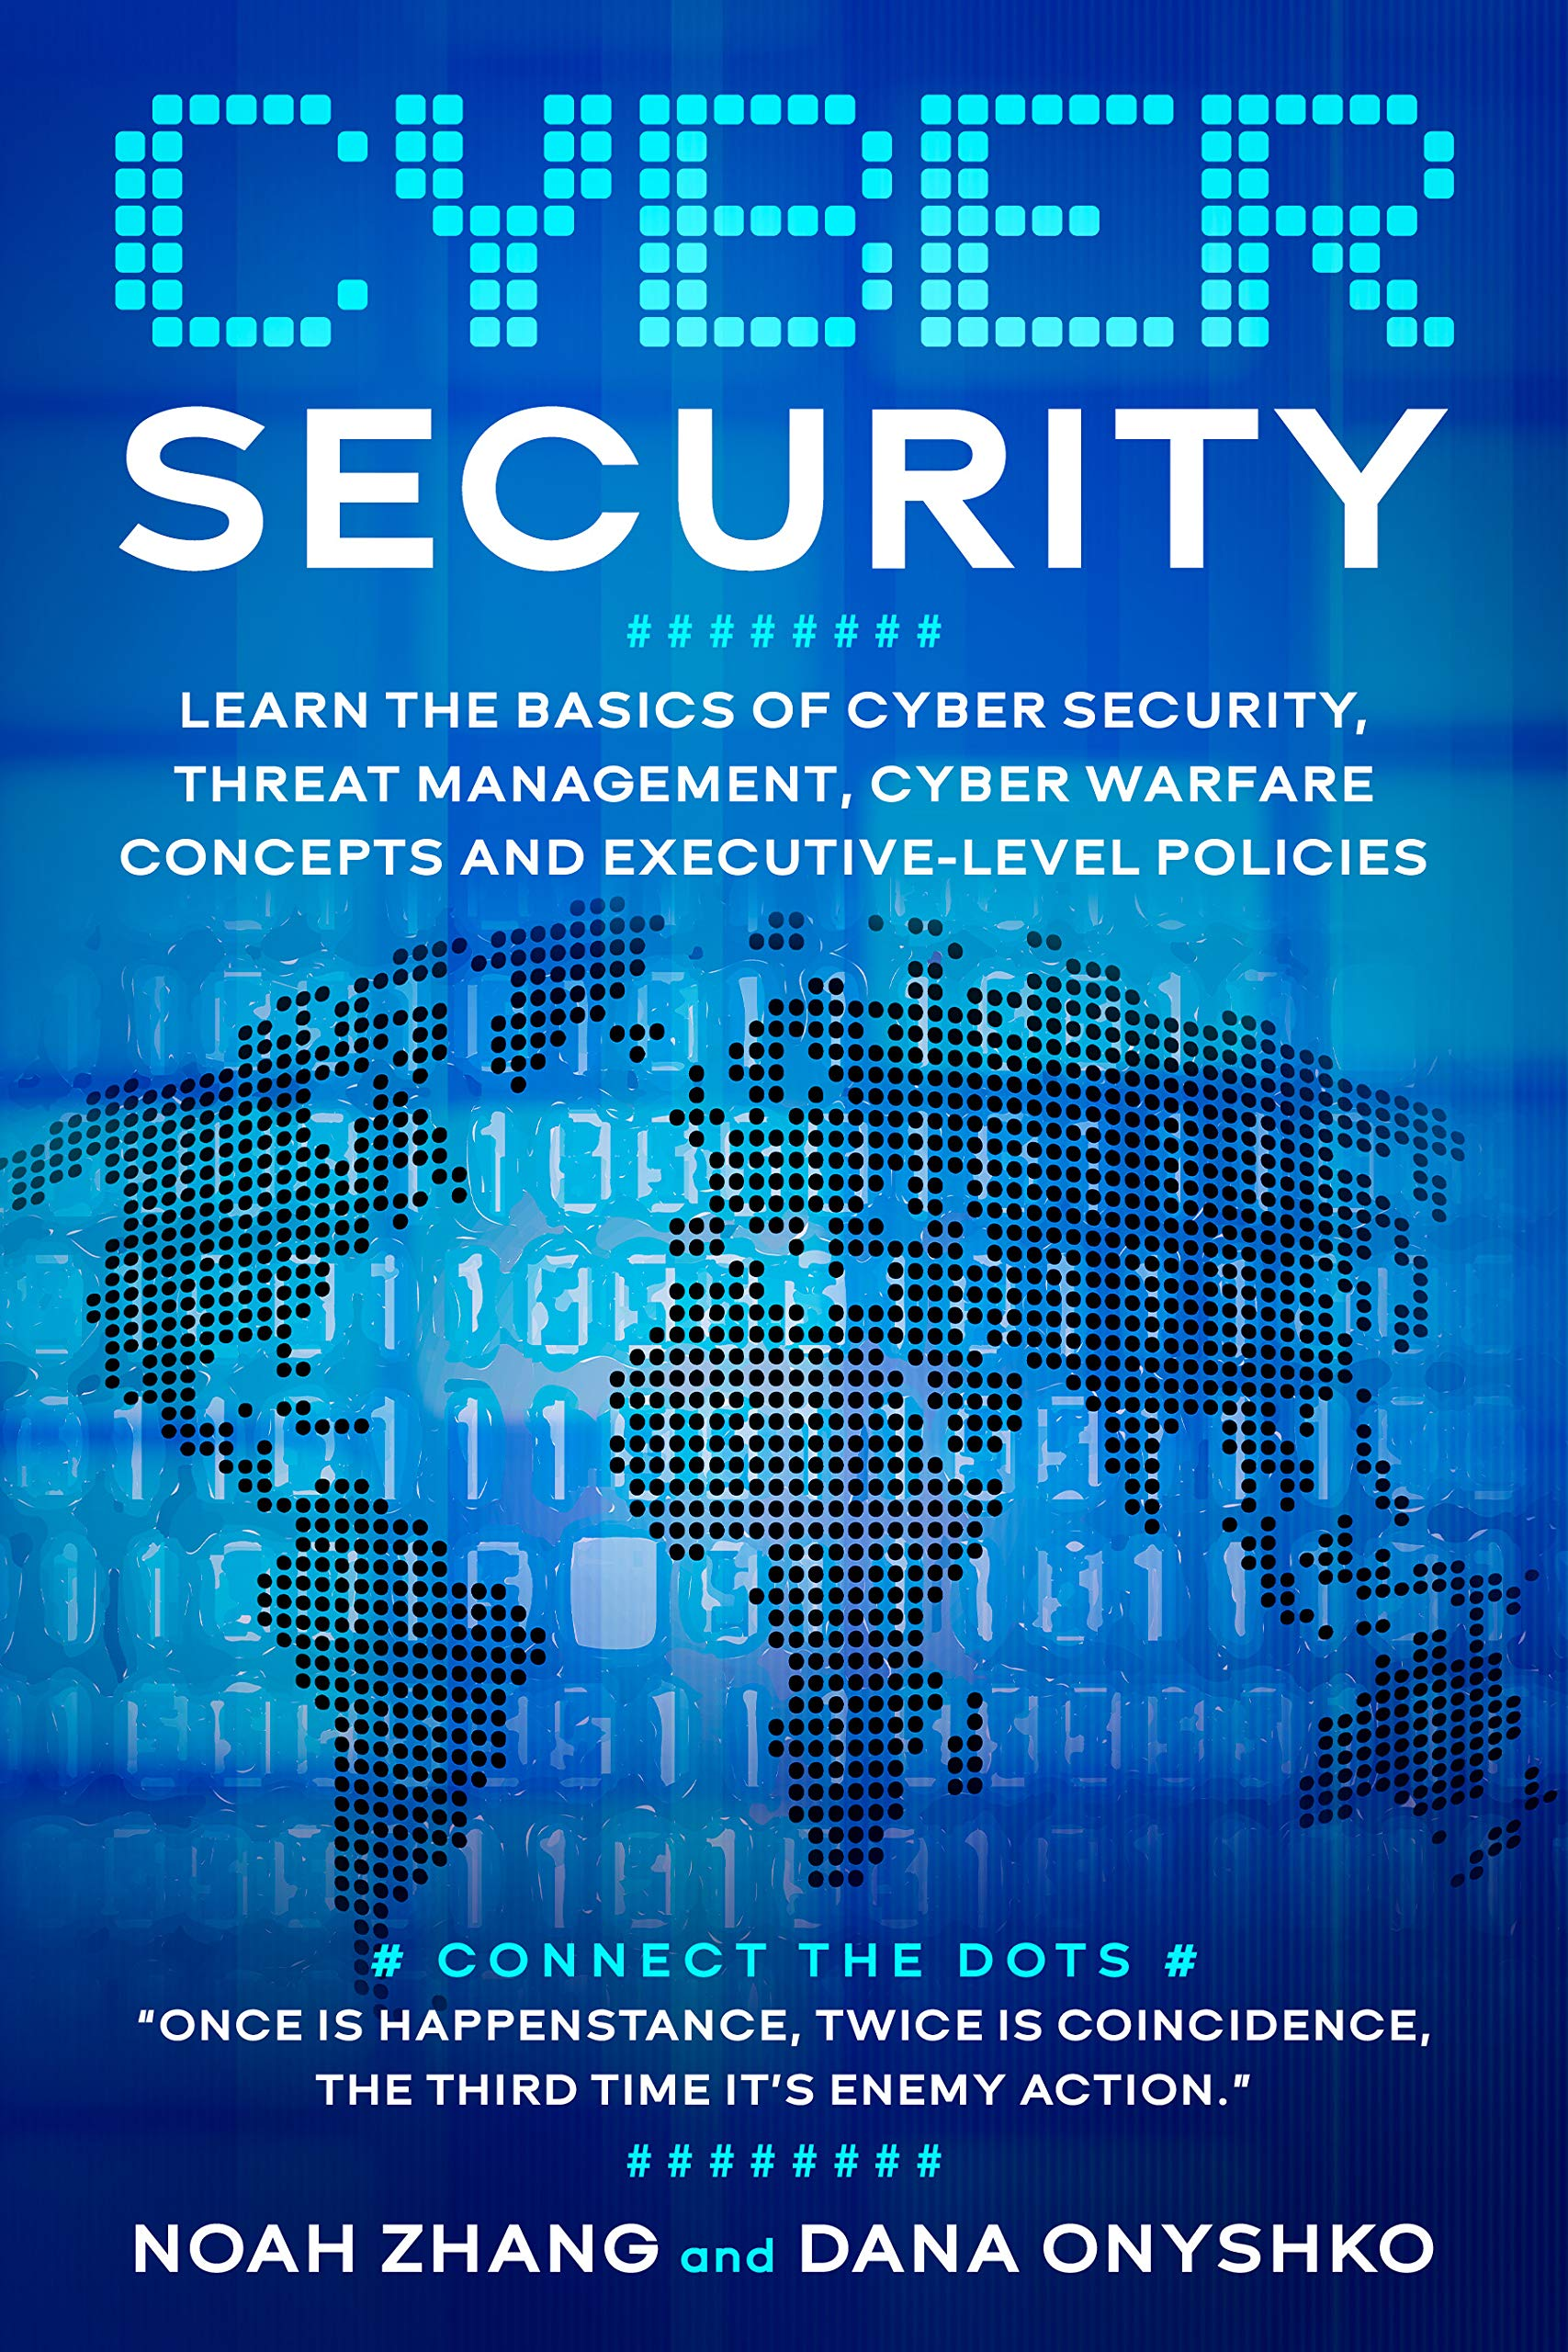 Cyber Security: Learn The Basics of Cyber Security, Threat Management, Cyber Warfare Concepts and Executive-Level Policies.